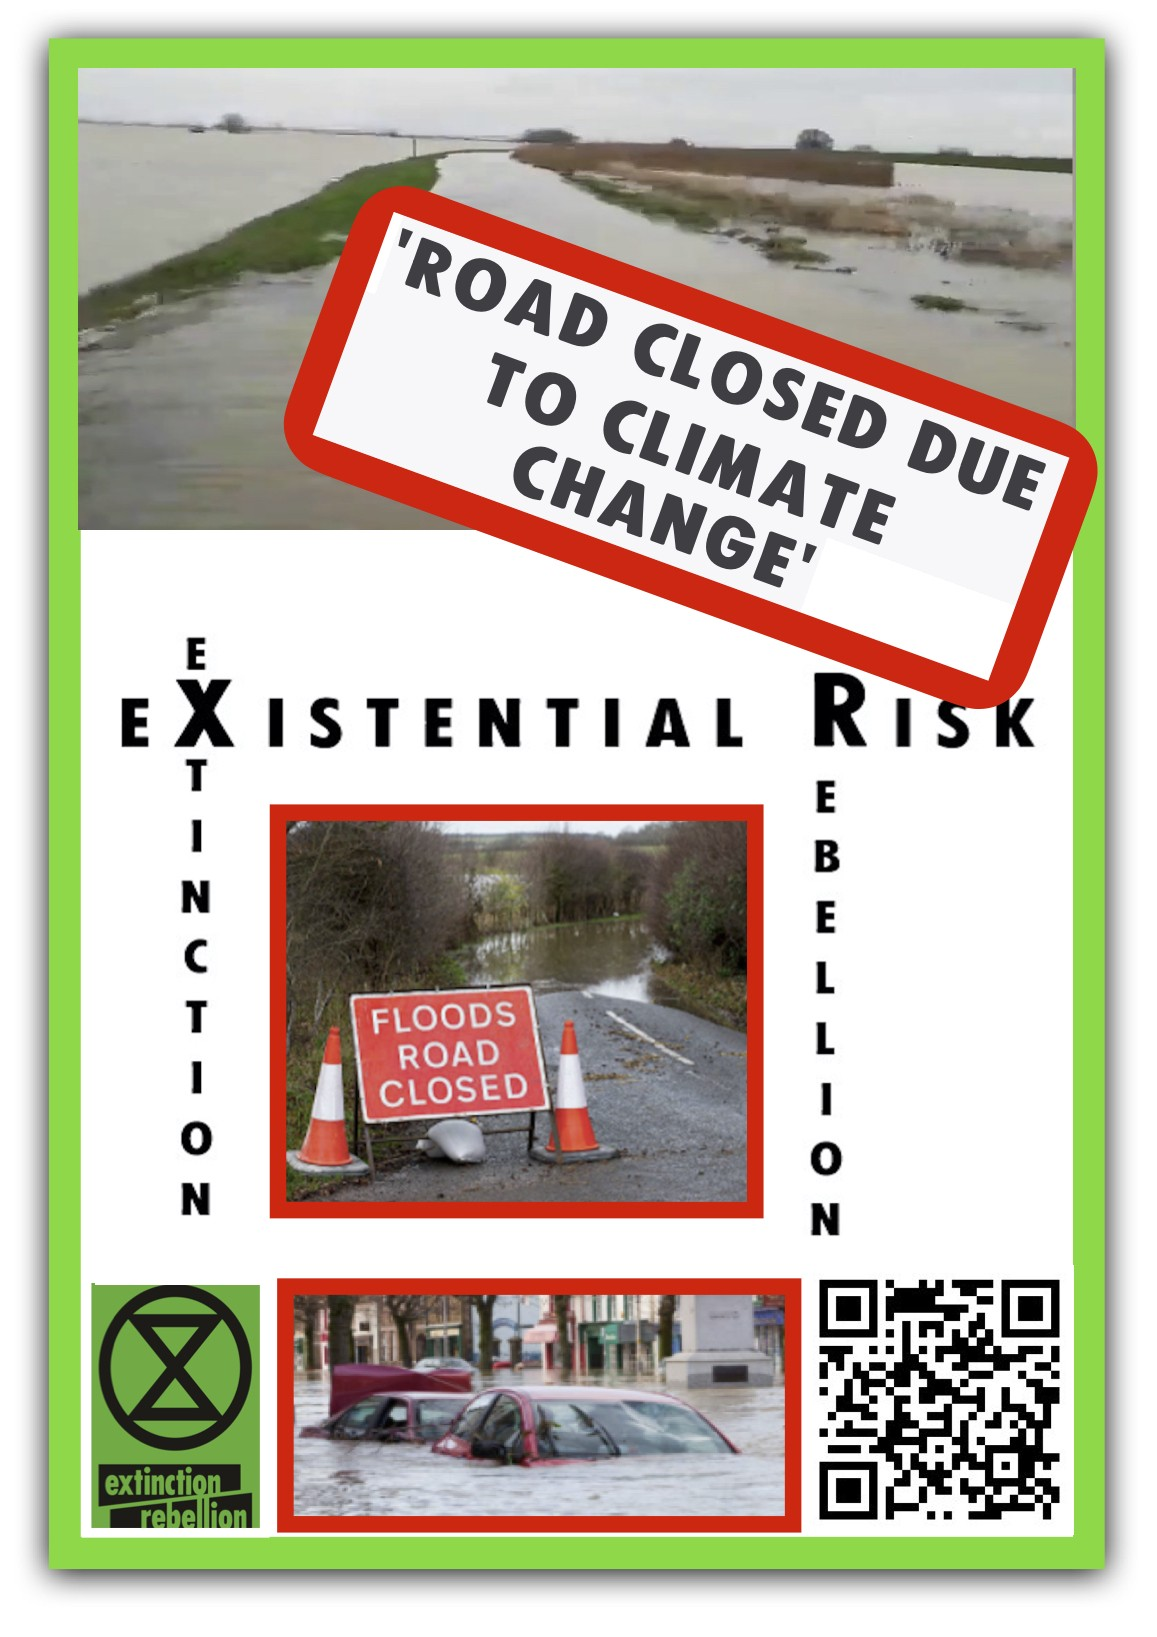 road-closed-due-to-climate-change-poster-with-extra-graphics-jpeg.jpg